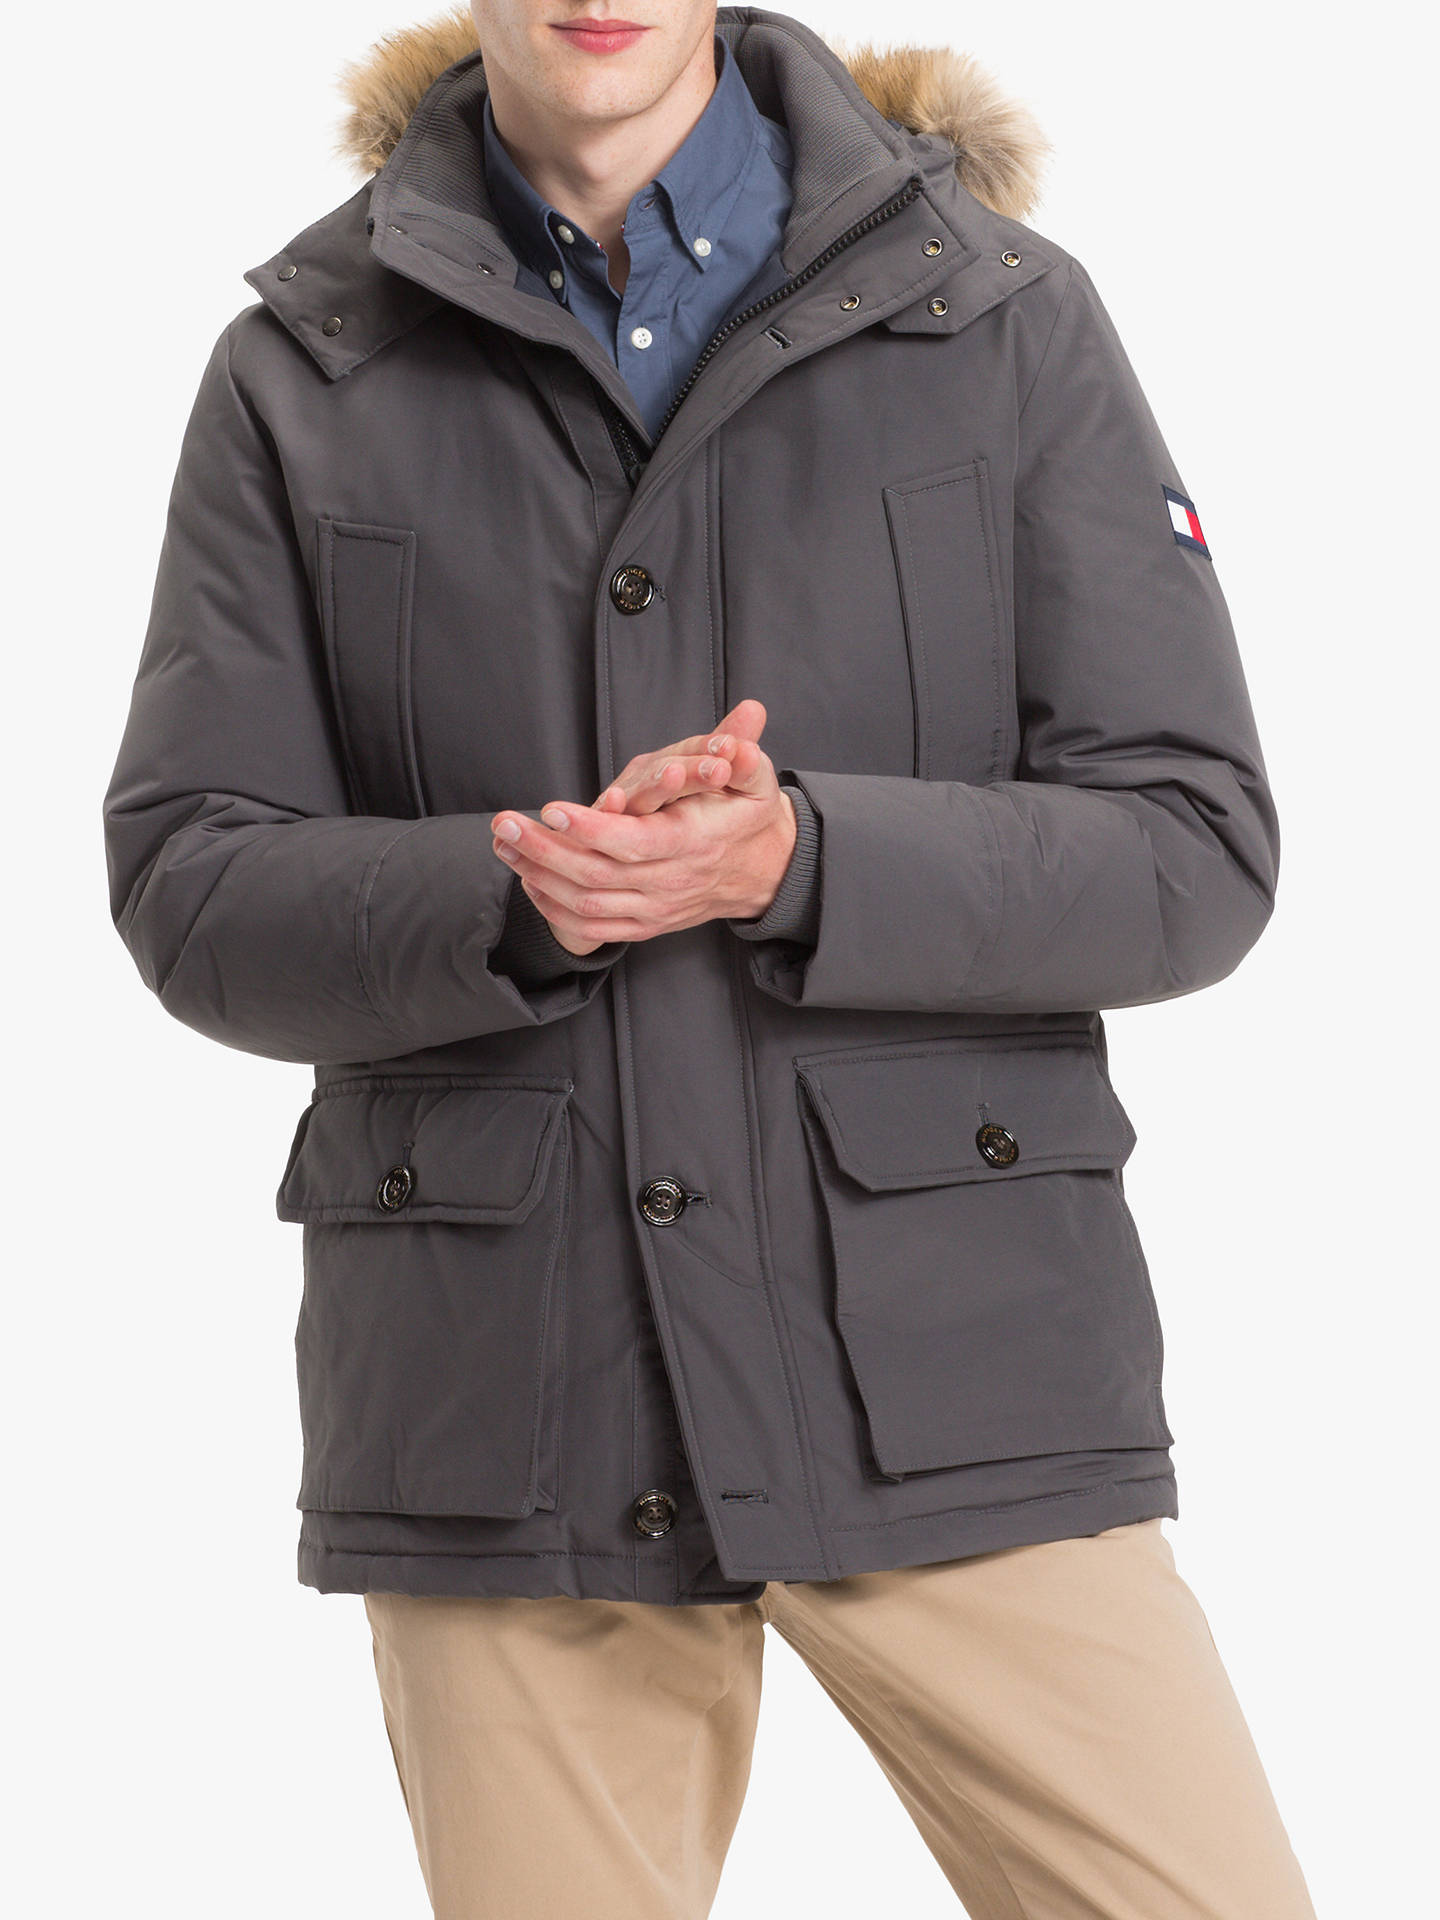 c67ca3fa Buy Tommy Hilfiger Hampton Down Parka Jacket, Magnet, L Online at  johnlewis.com ...